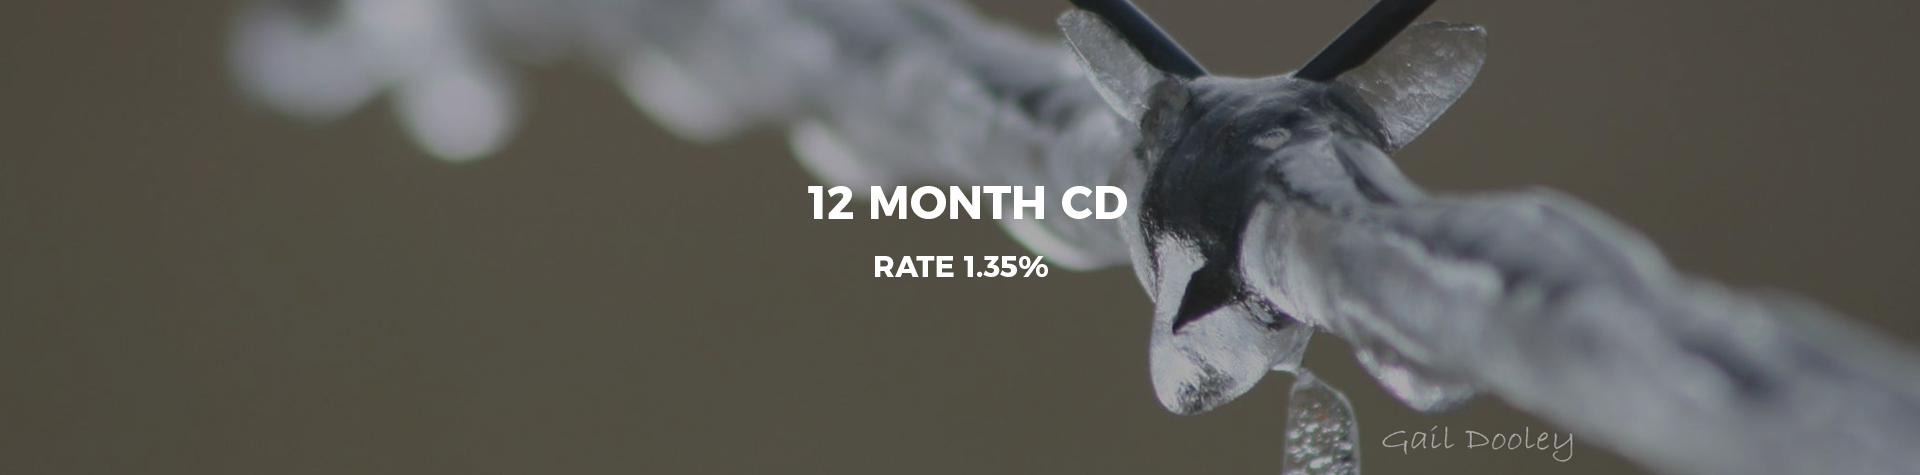 12 Month CD Rate